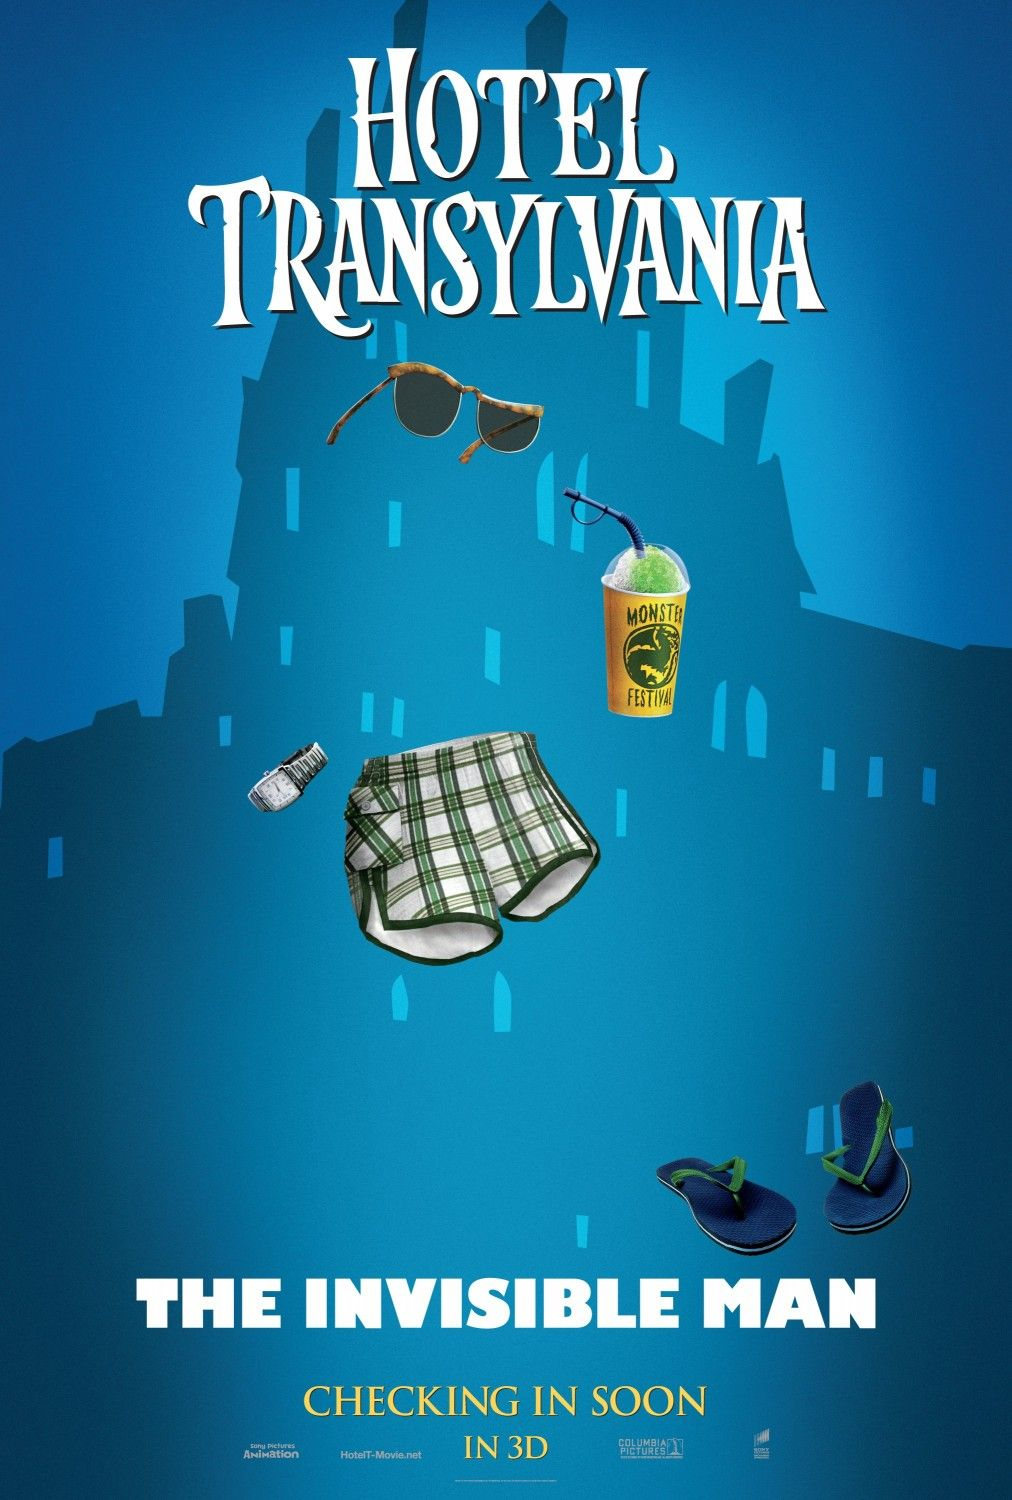 Hotel Transylvania- My favorite character in the movie is: THE INVISIBLE MAN!!!!